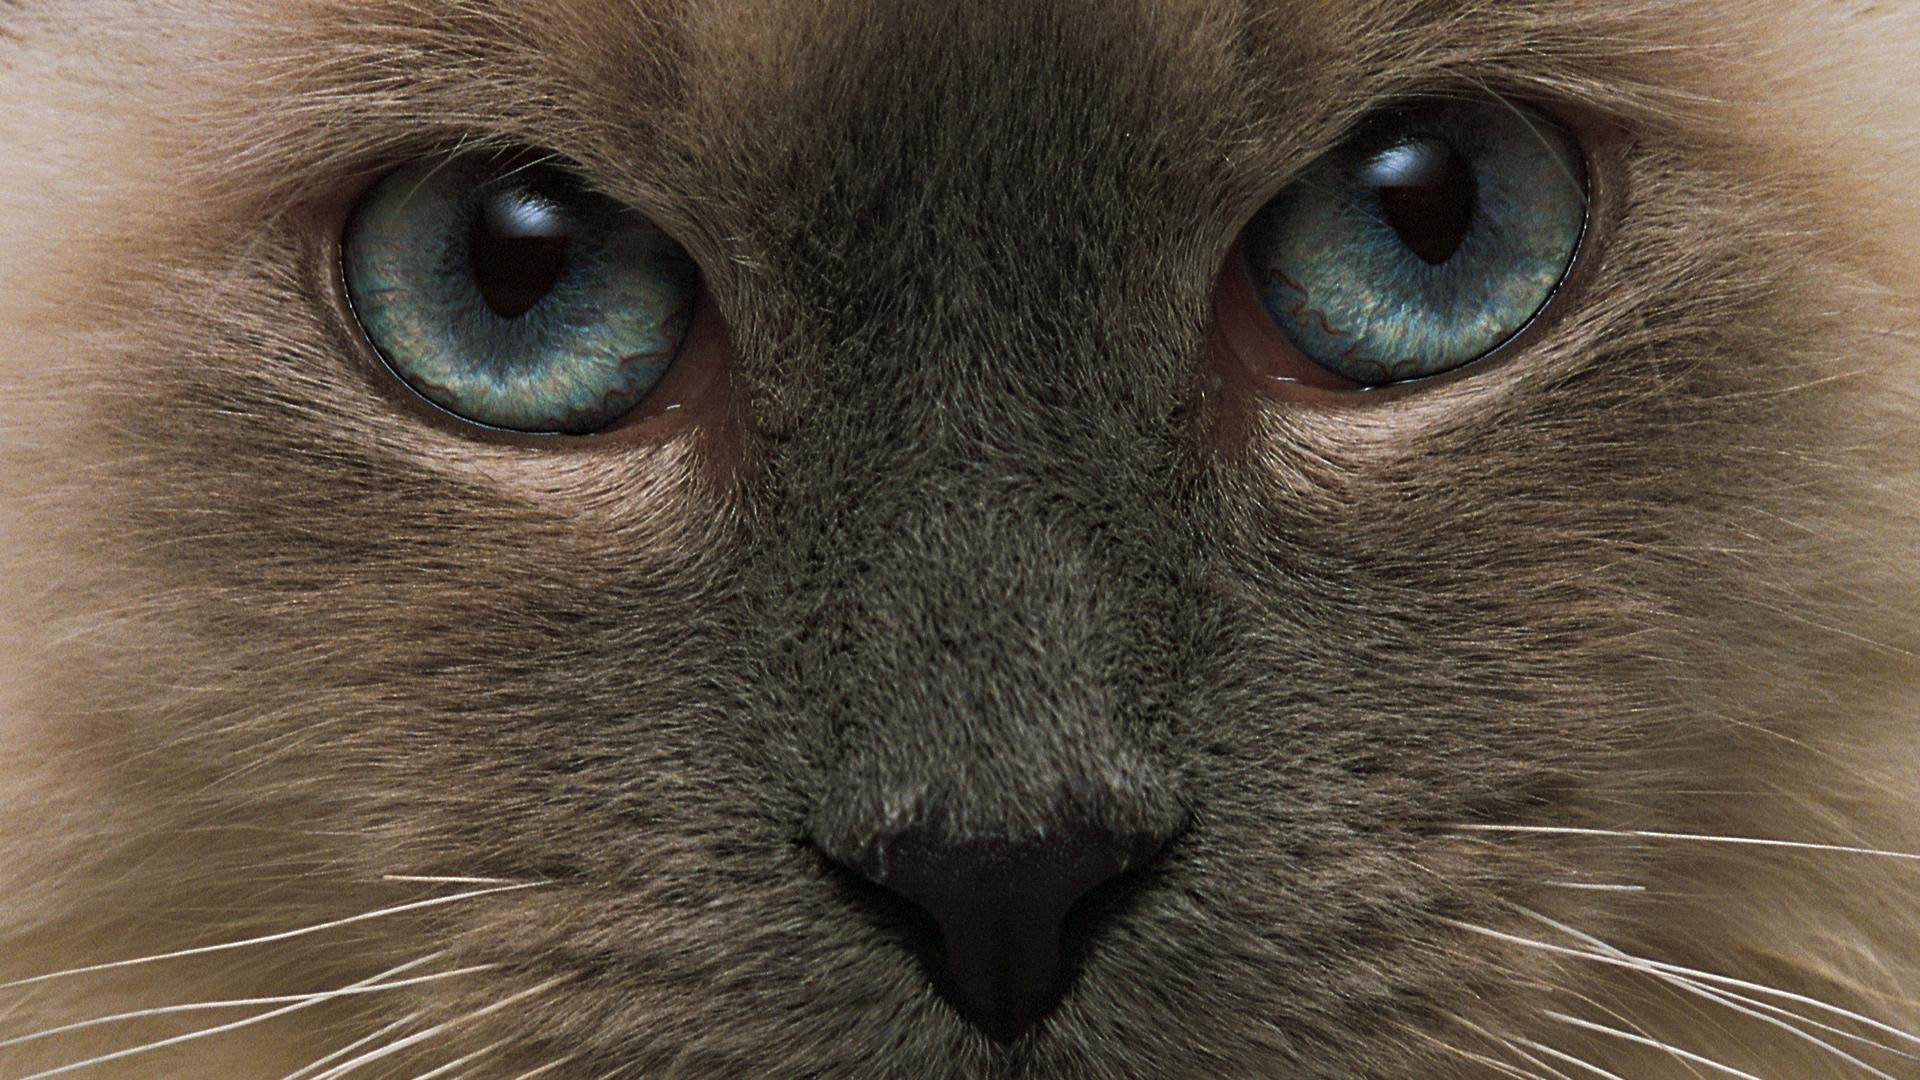 download cats eyes wallpaper tags feline nose eyes whiskers pretty 1808